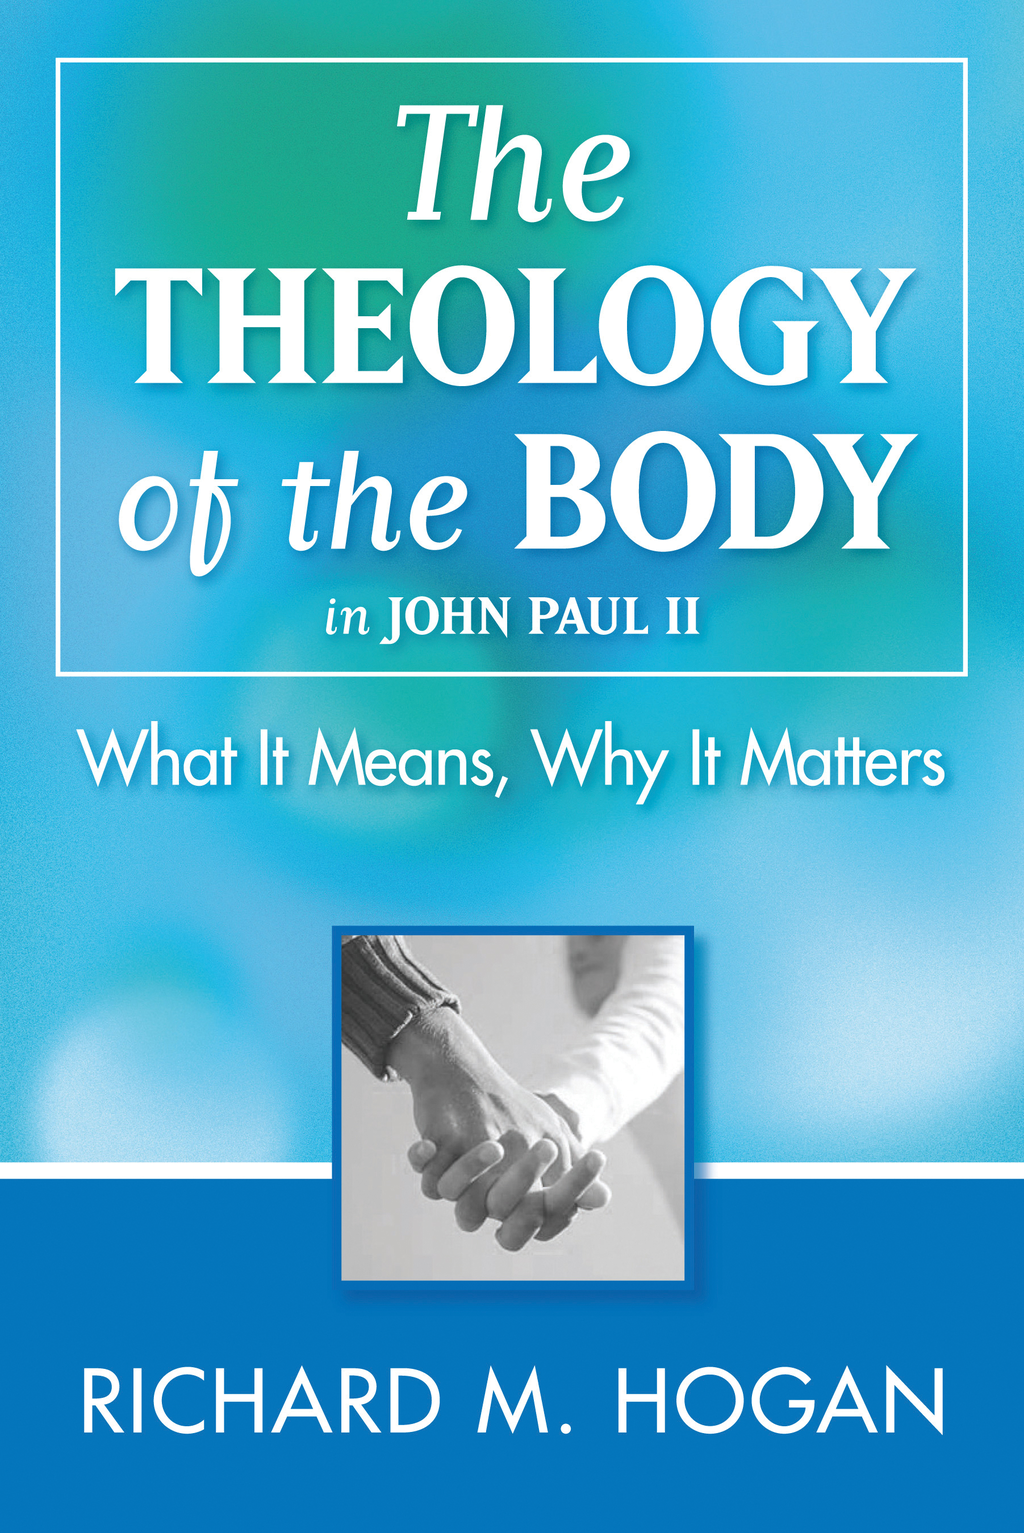 The Theology of the Body: What it Means and Why It Matters in John Paul II By: Richard M. Hogan